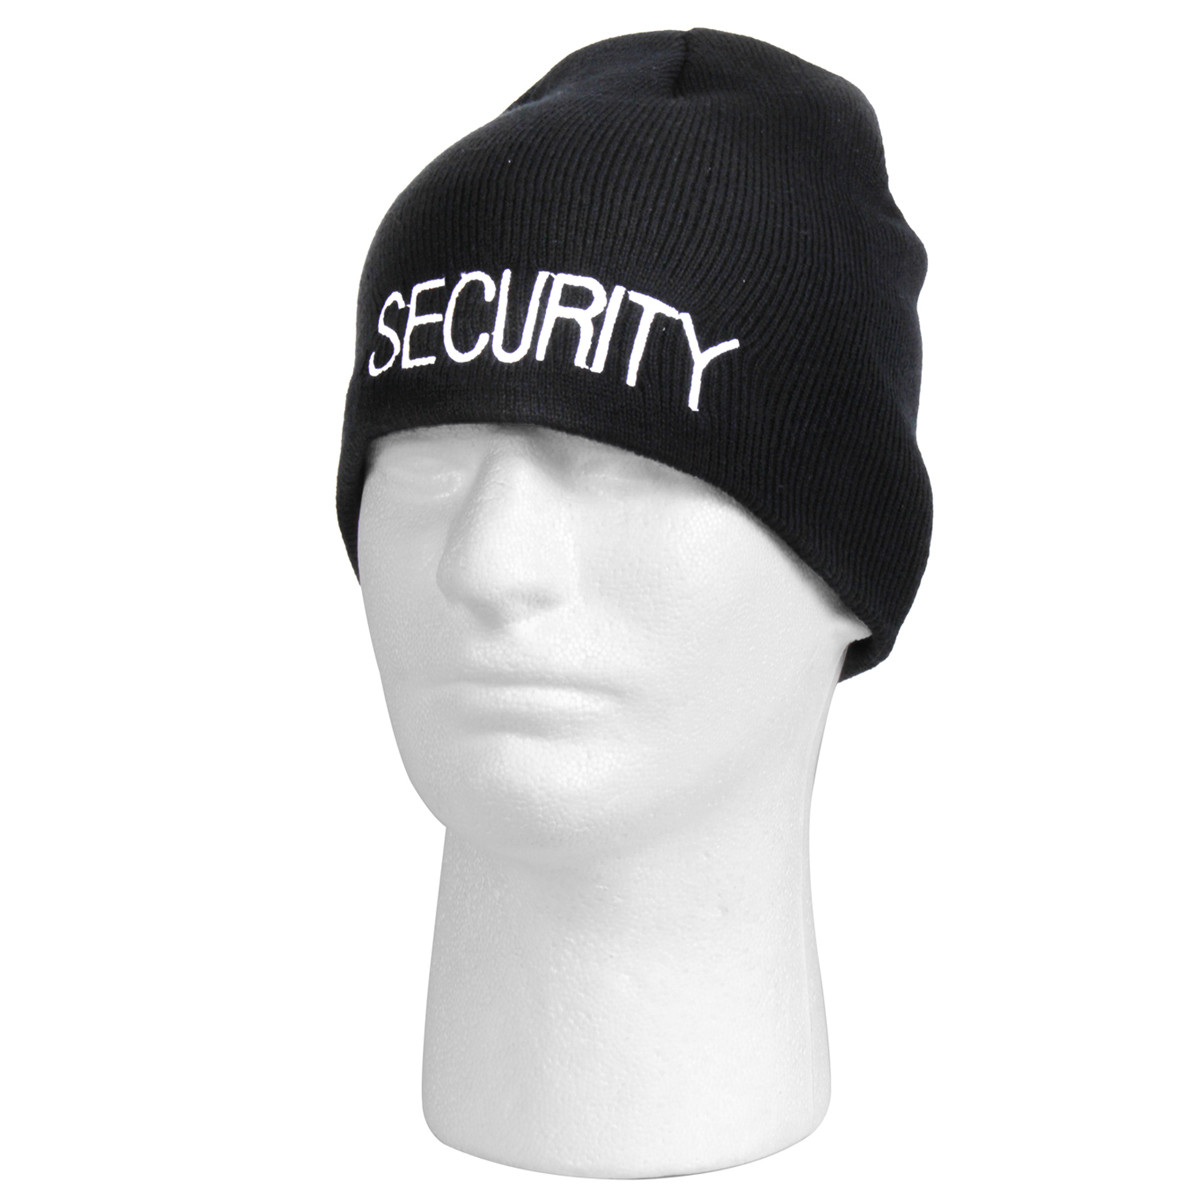 520027a68383ed Shop Security Skull Caps - Fatigues Army Navy Gear`